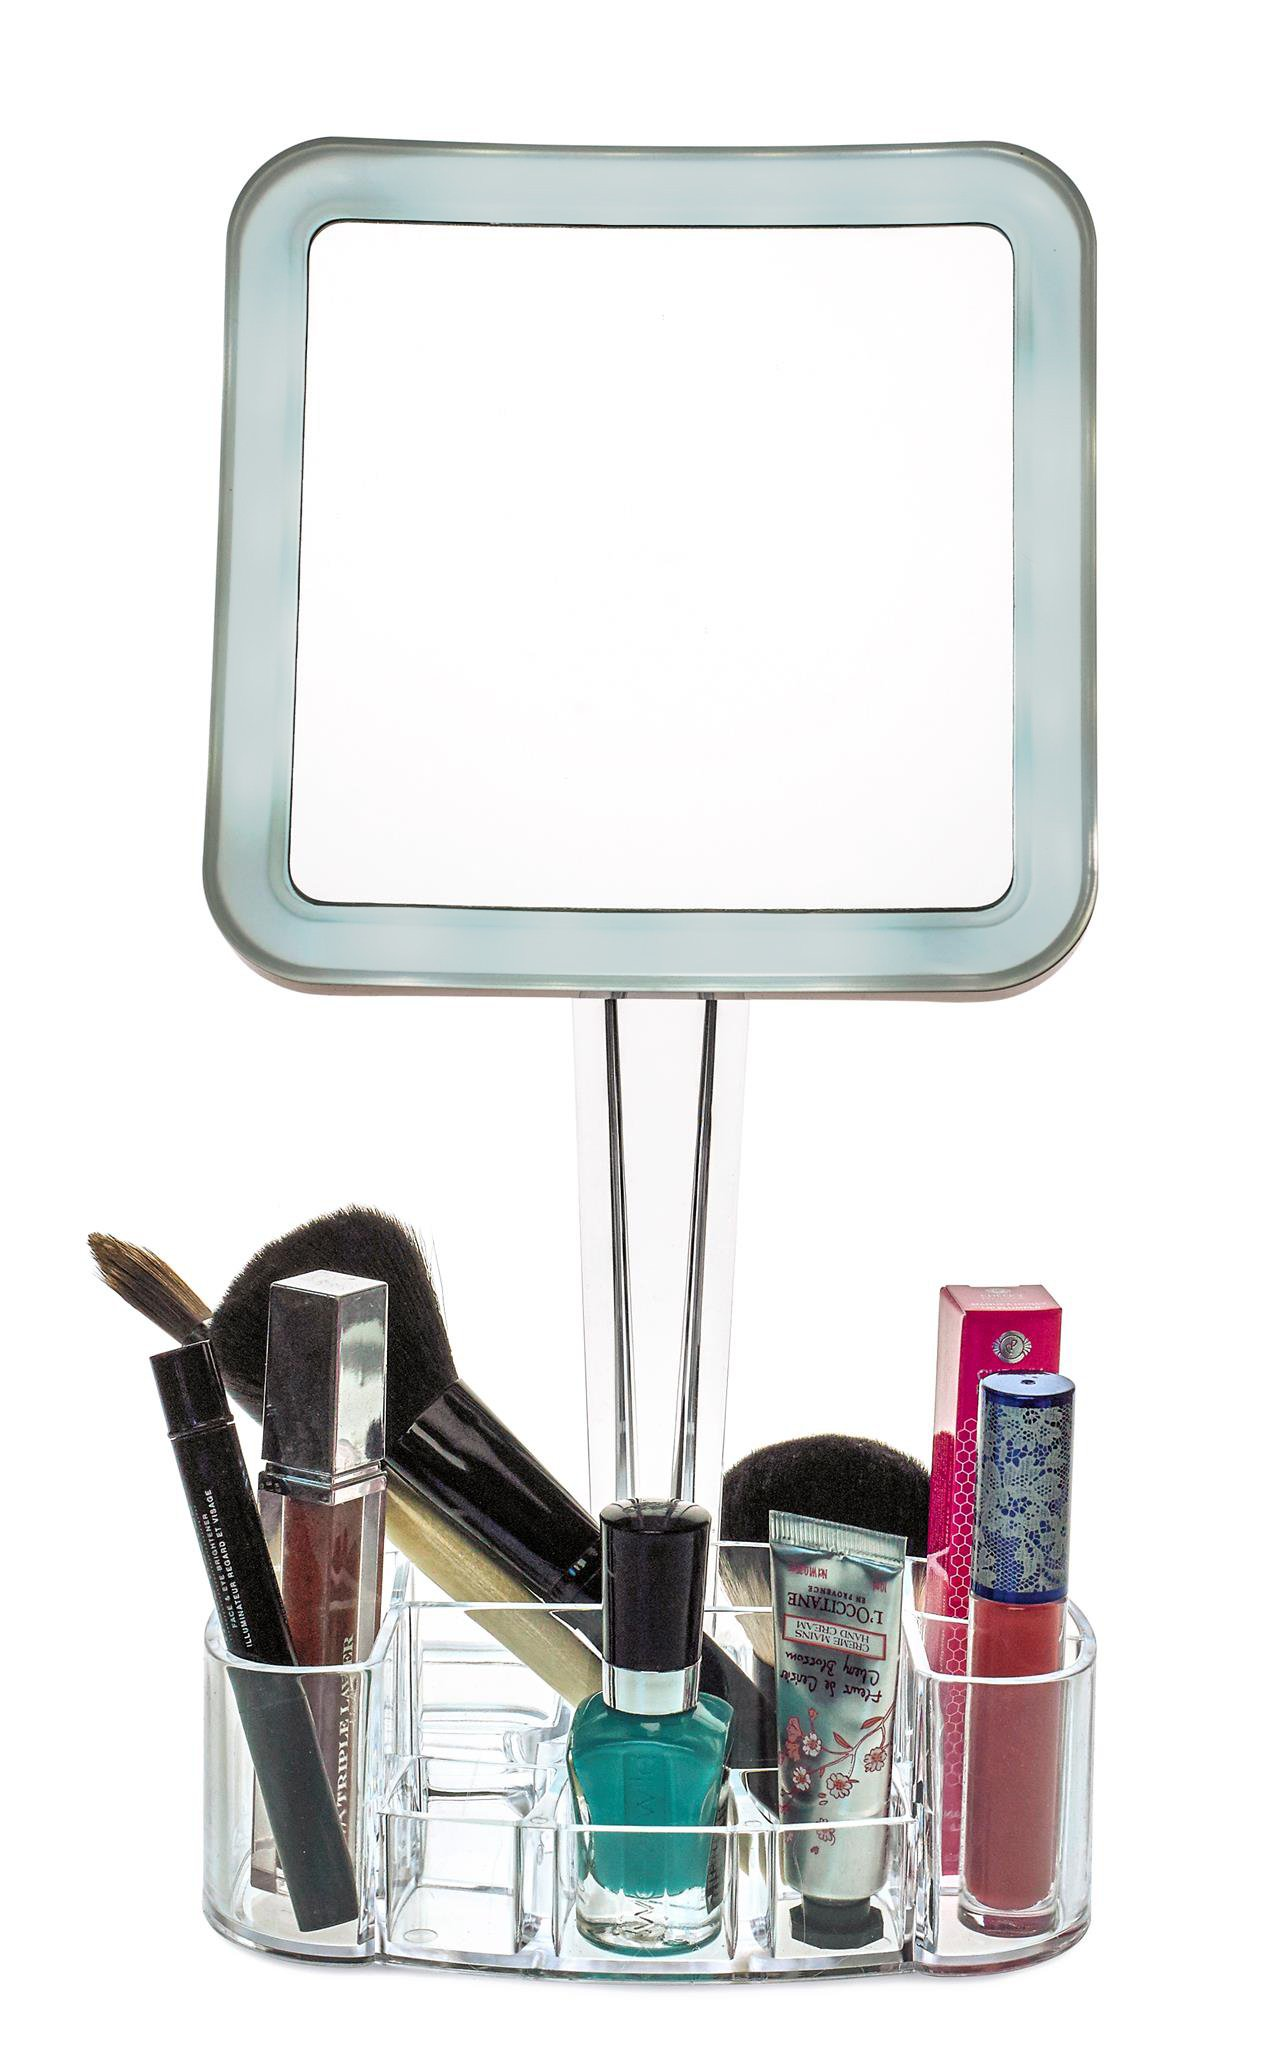 daisi Magnifying Lighted Makeup Mirror with Cosmetic Organizer Base   7X Magnification, LED Lighted Free Standing Bathroom Mirror for Vanity, Desk or Tabletop   Square